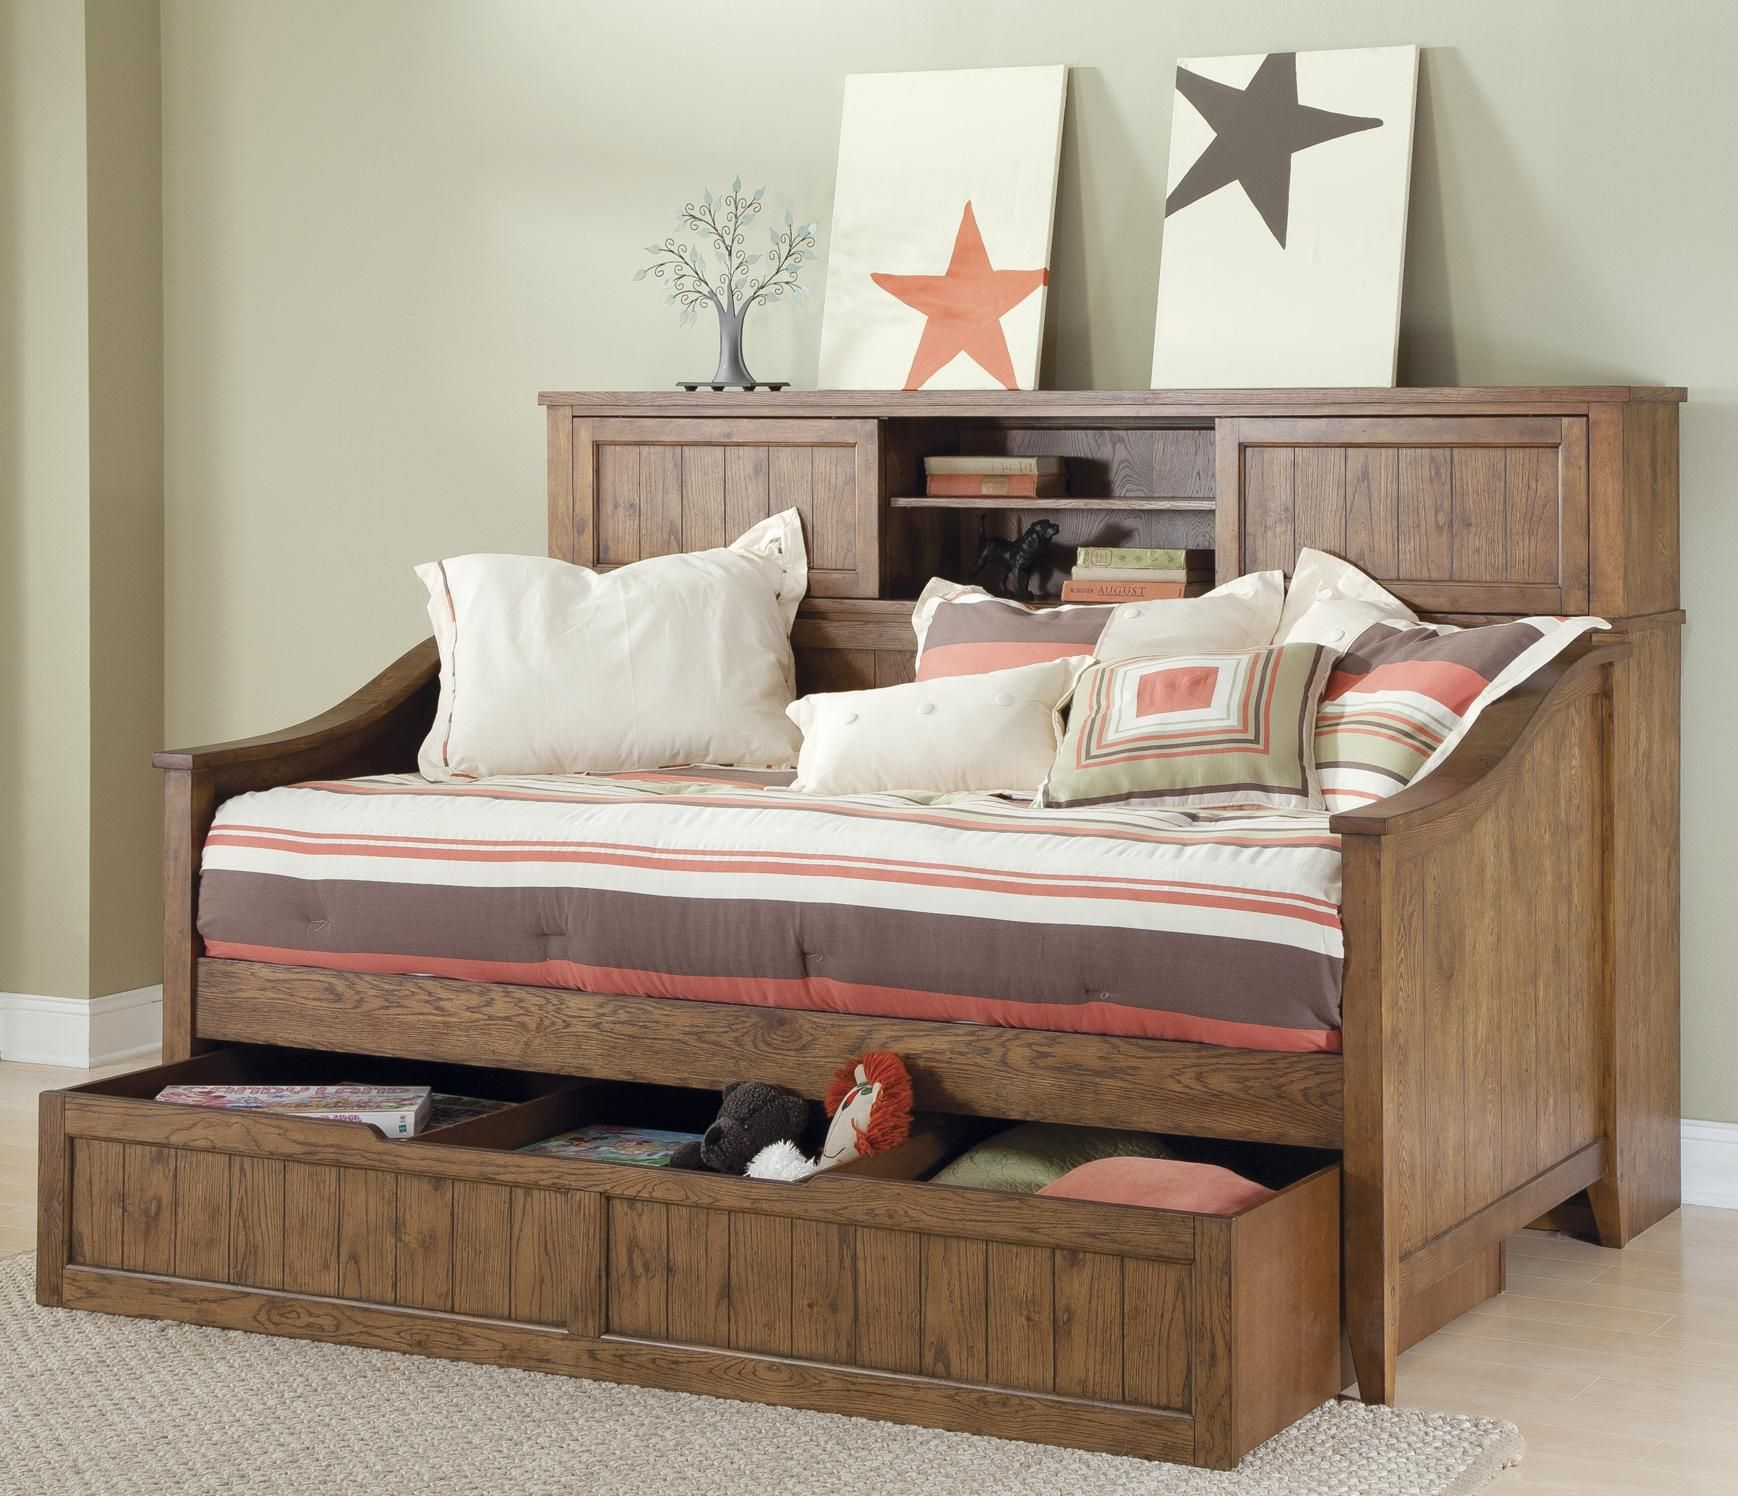 Cool Trundle Bed with Drawers — Modern Trundle Beds